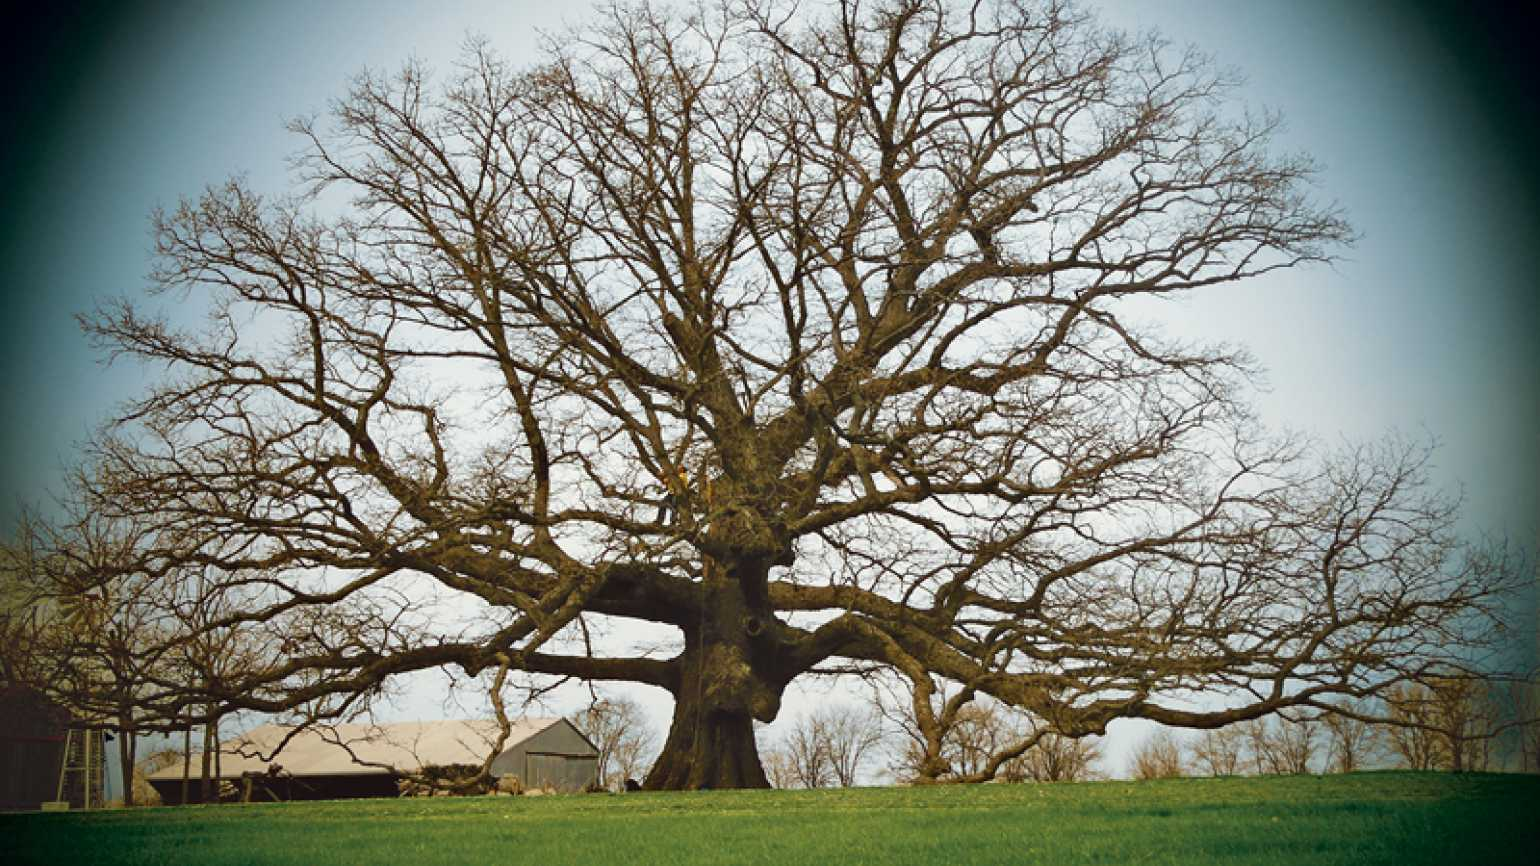 A photograph of a giant tree